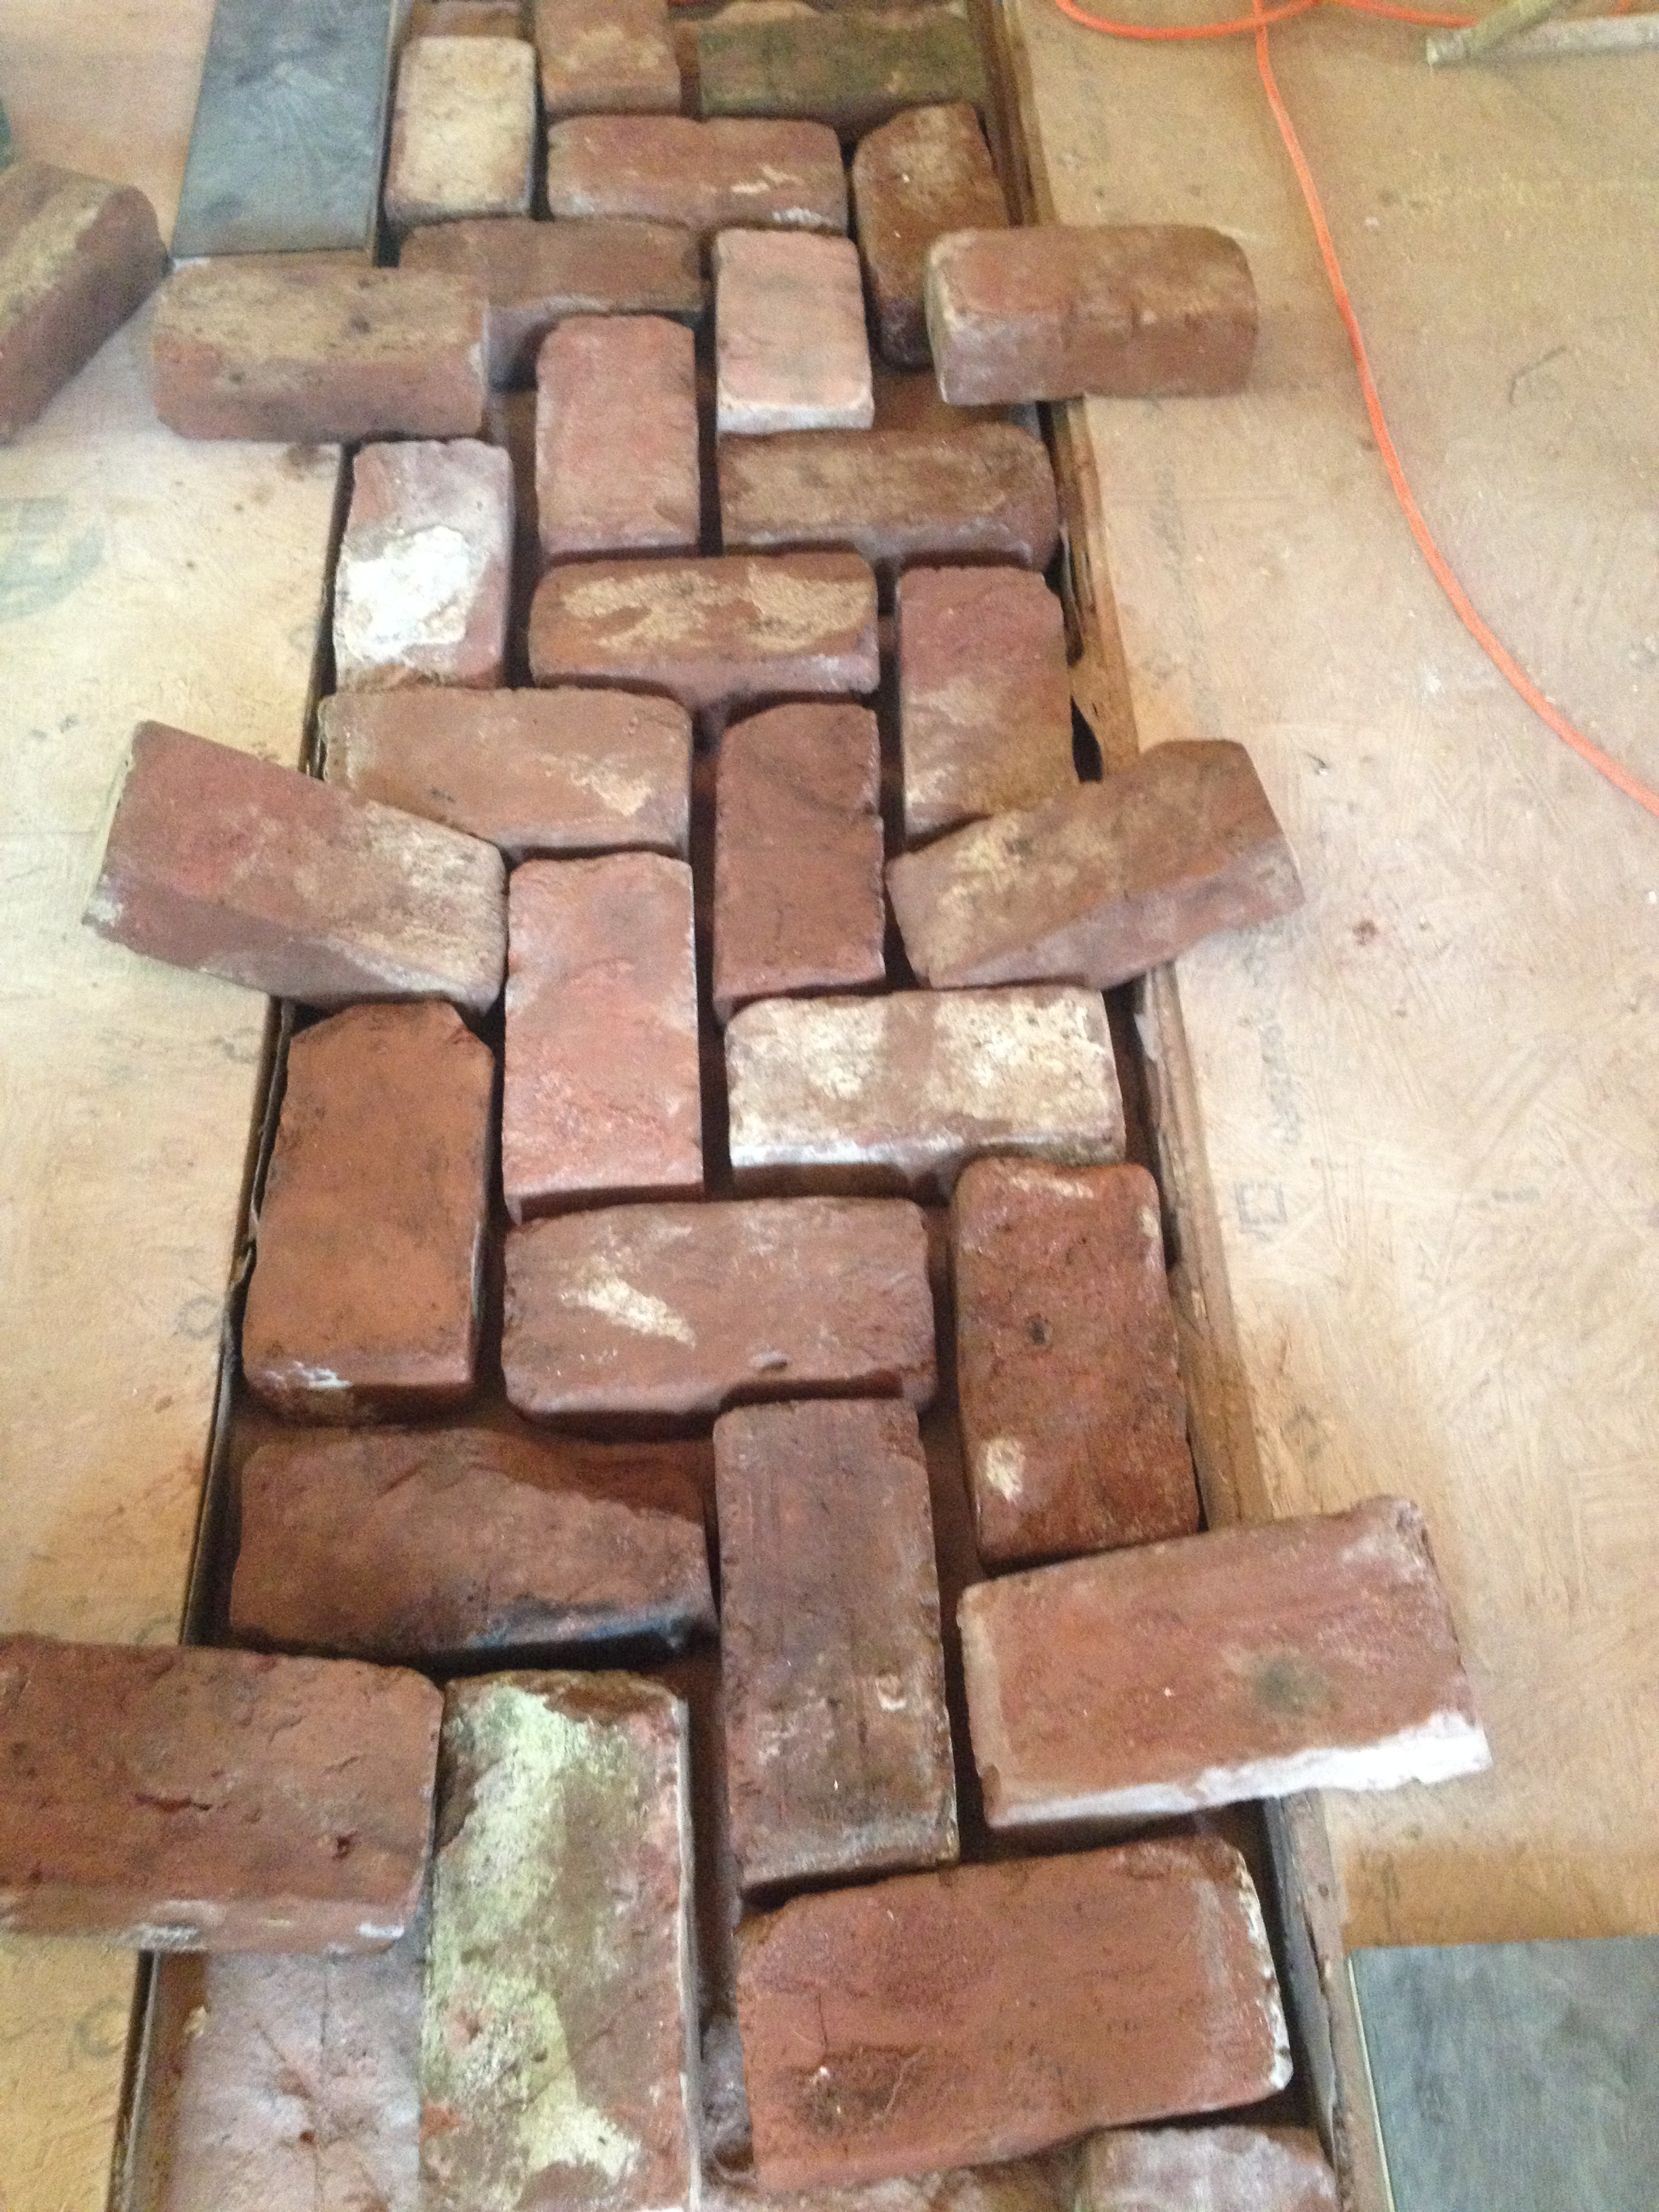 structural masonry, test fitting herringbone pattern for finished floor detail